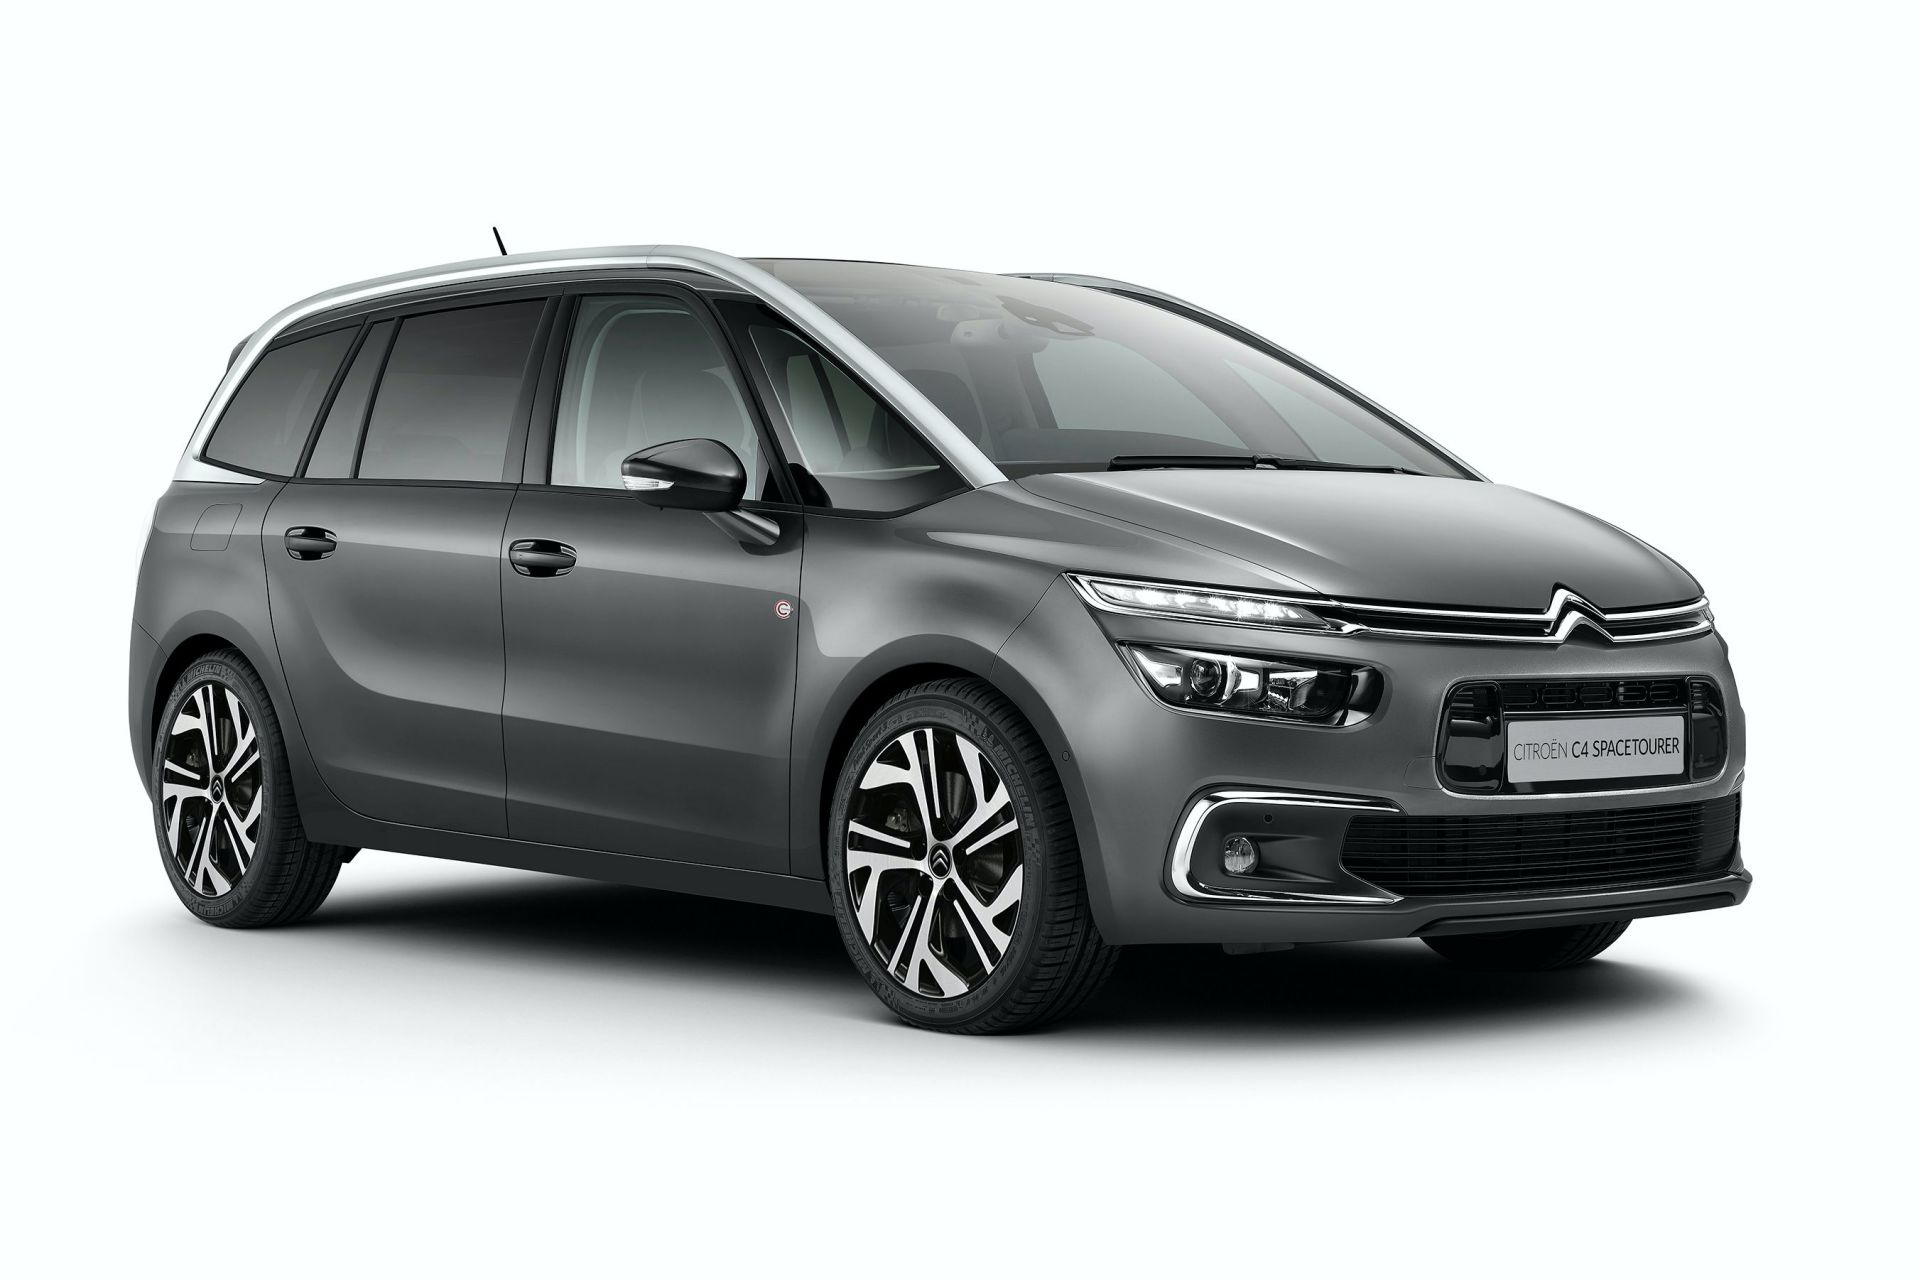 2021-Citroen-Grand-C4-SpaceTourer-C-Series-5